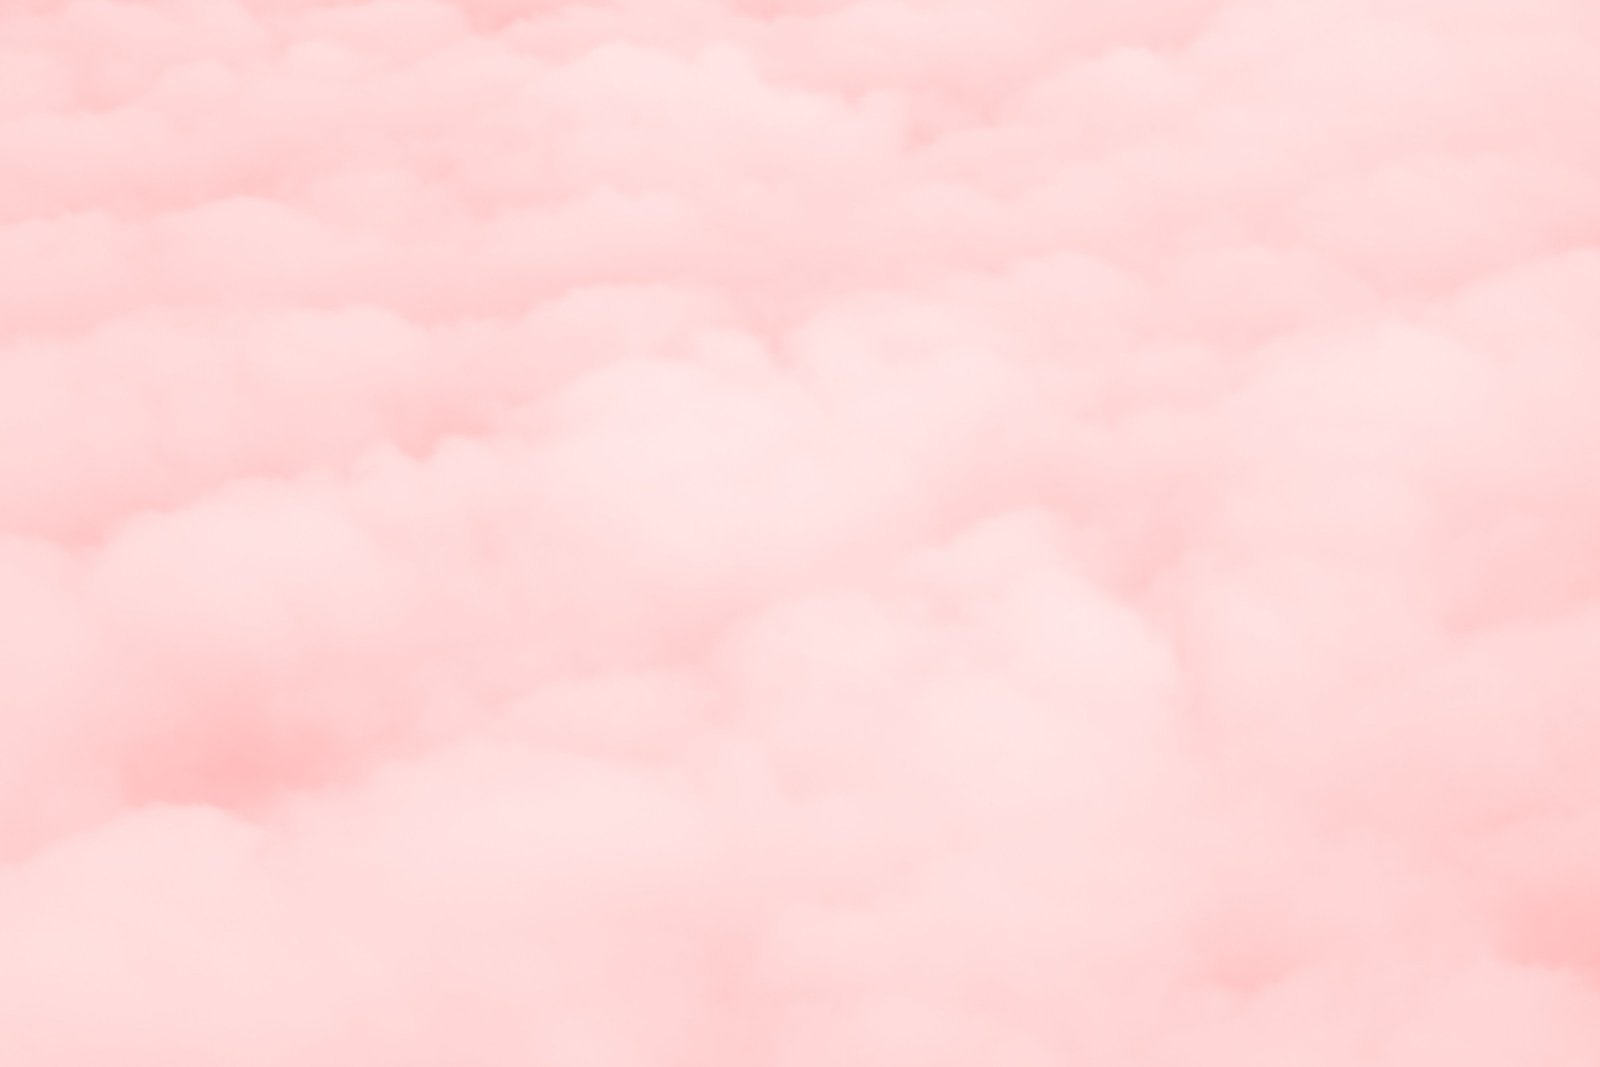 pink-clouds-1831234